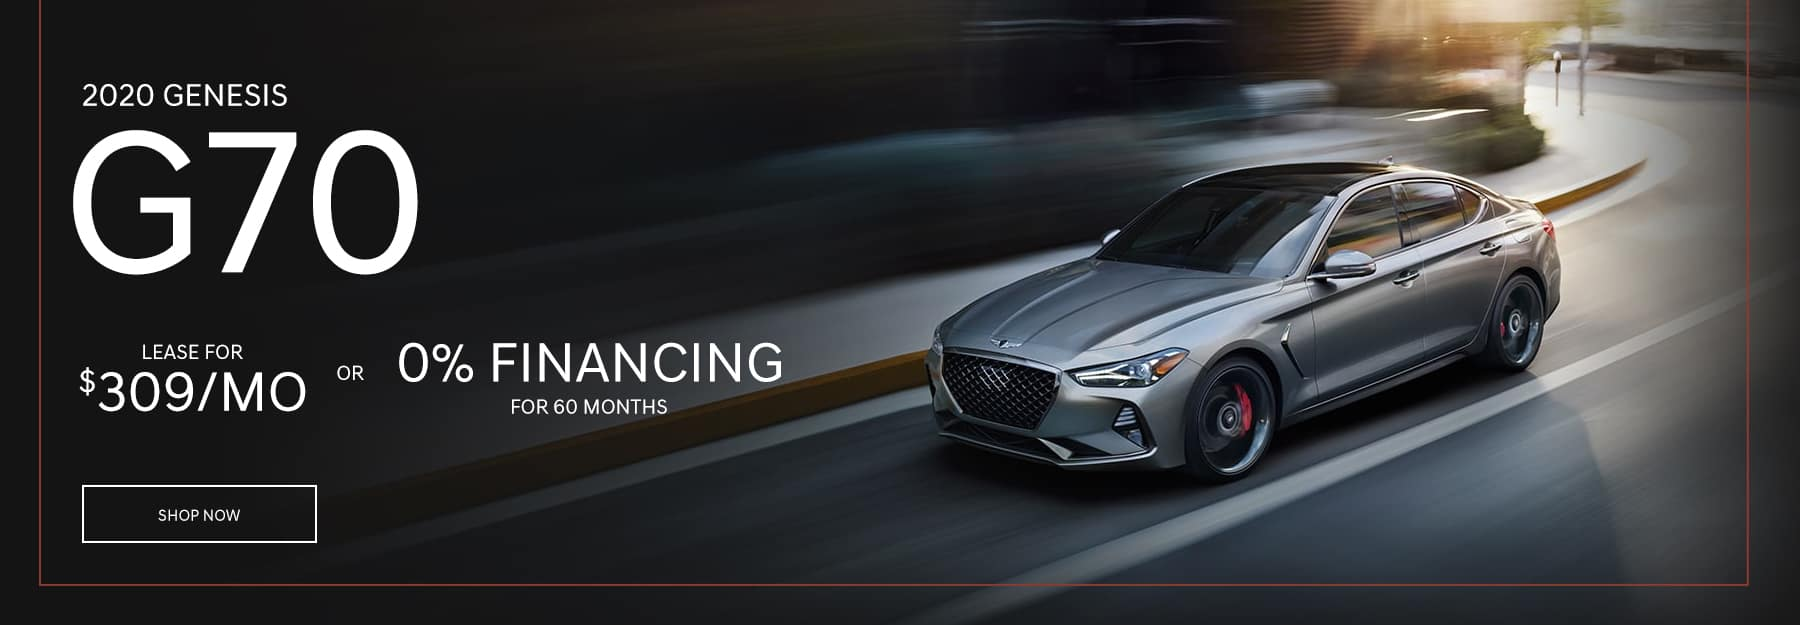 2020 Genesis G70 Lease for $309/mo or 0% Financing